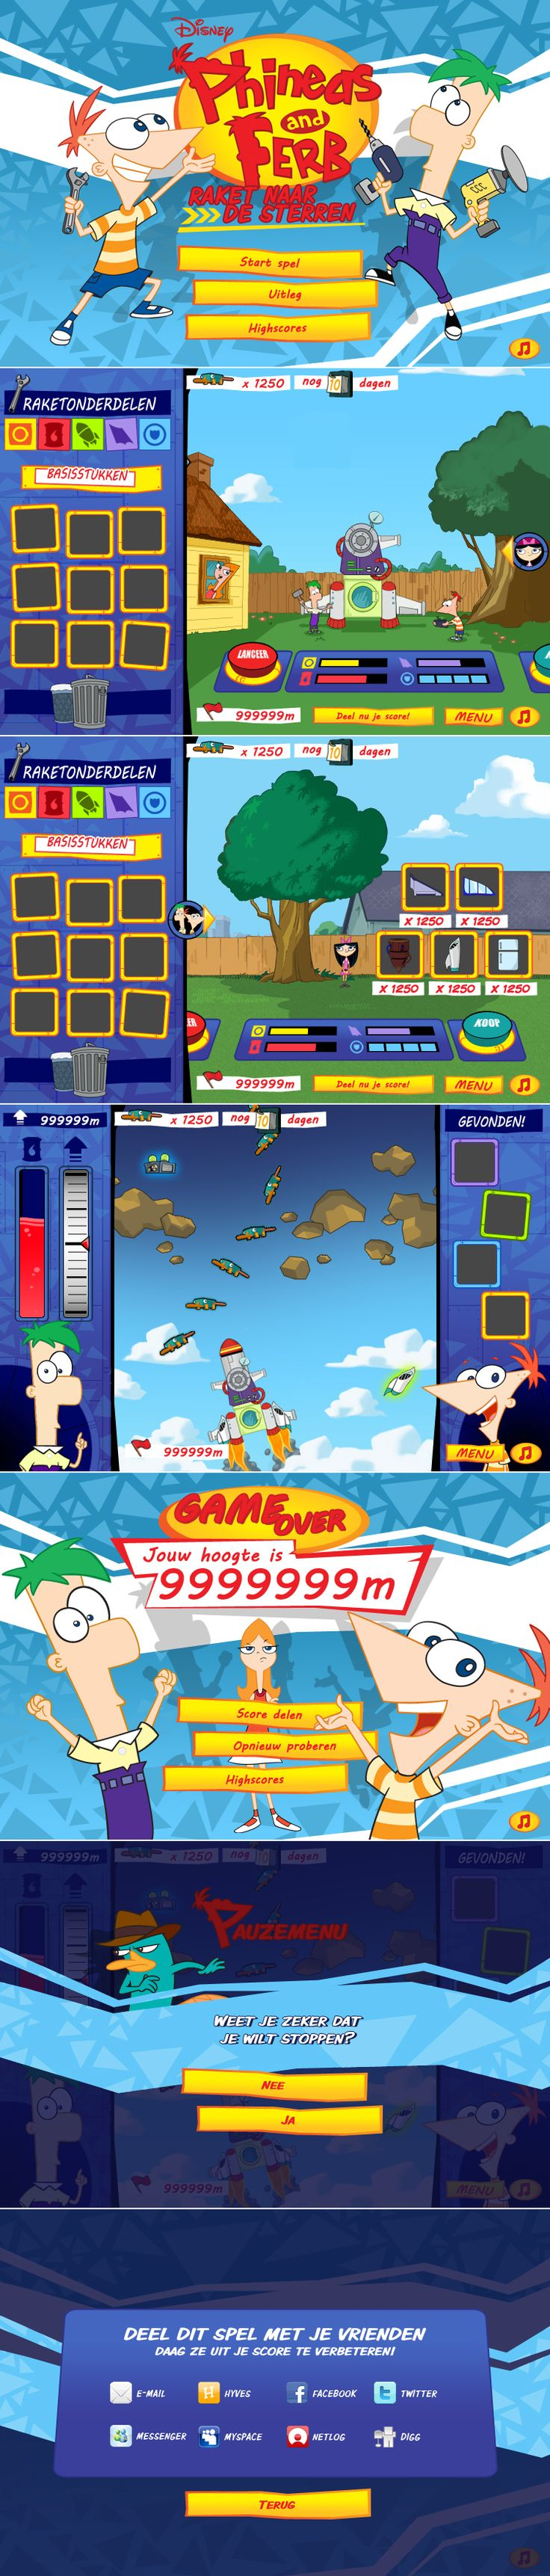 Phineas & Ferb: Out to Launch ('Raket naar de Sterren' in the Dutch version) is an online game where you can build your own rocket from scrap, then take it to the stars! How high can you get?  http://www.grinwise.com/portfolios/phineas-ferb/